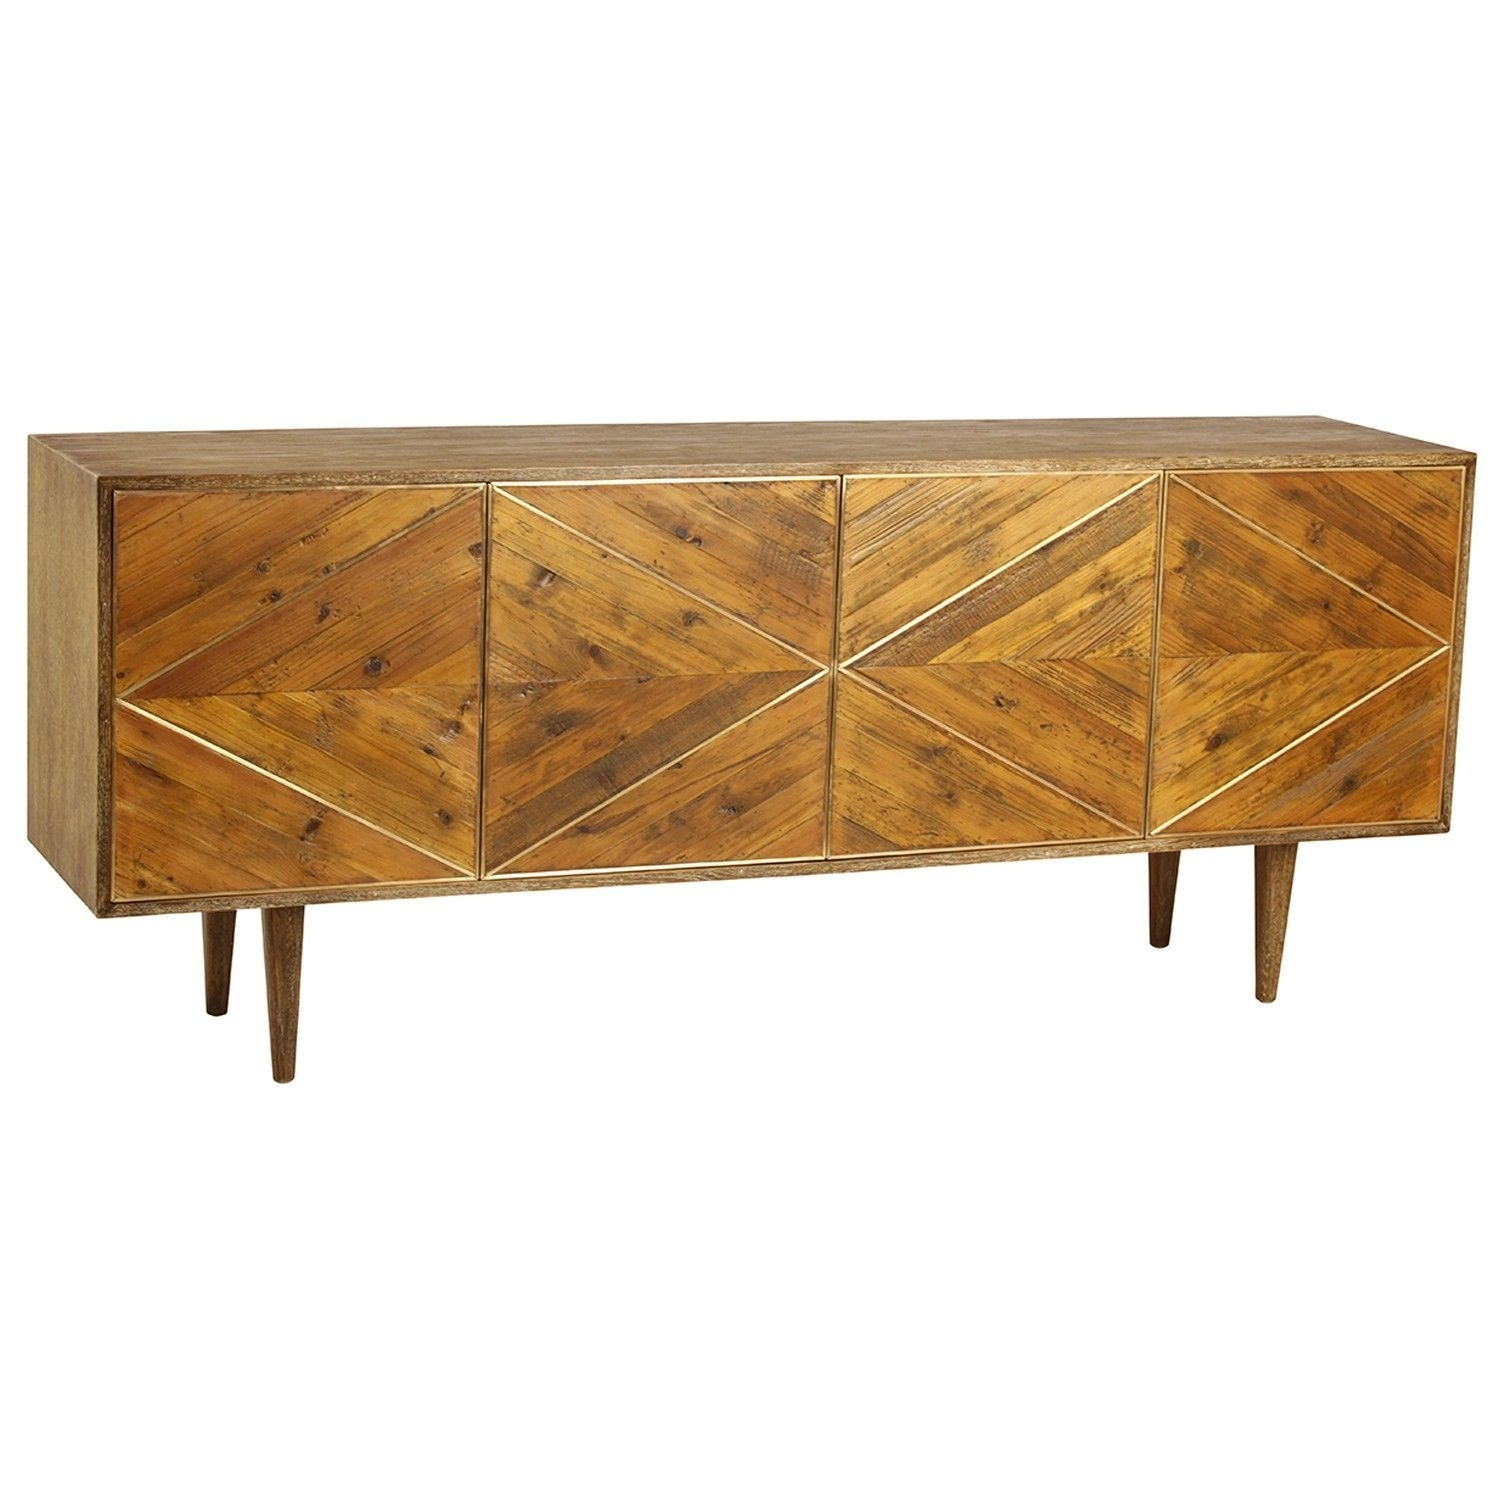 Popular Photo of Burnt Oak Bleached Pine Sideboards